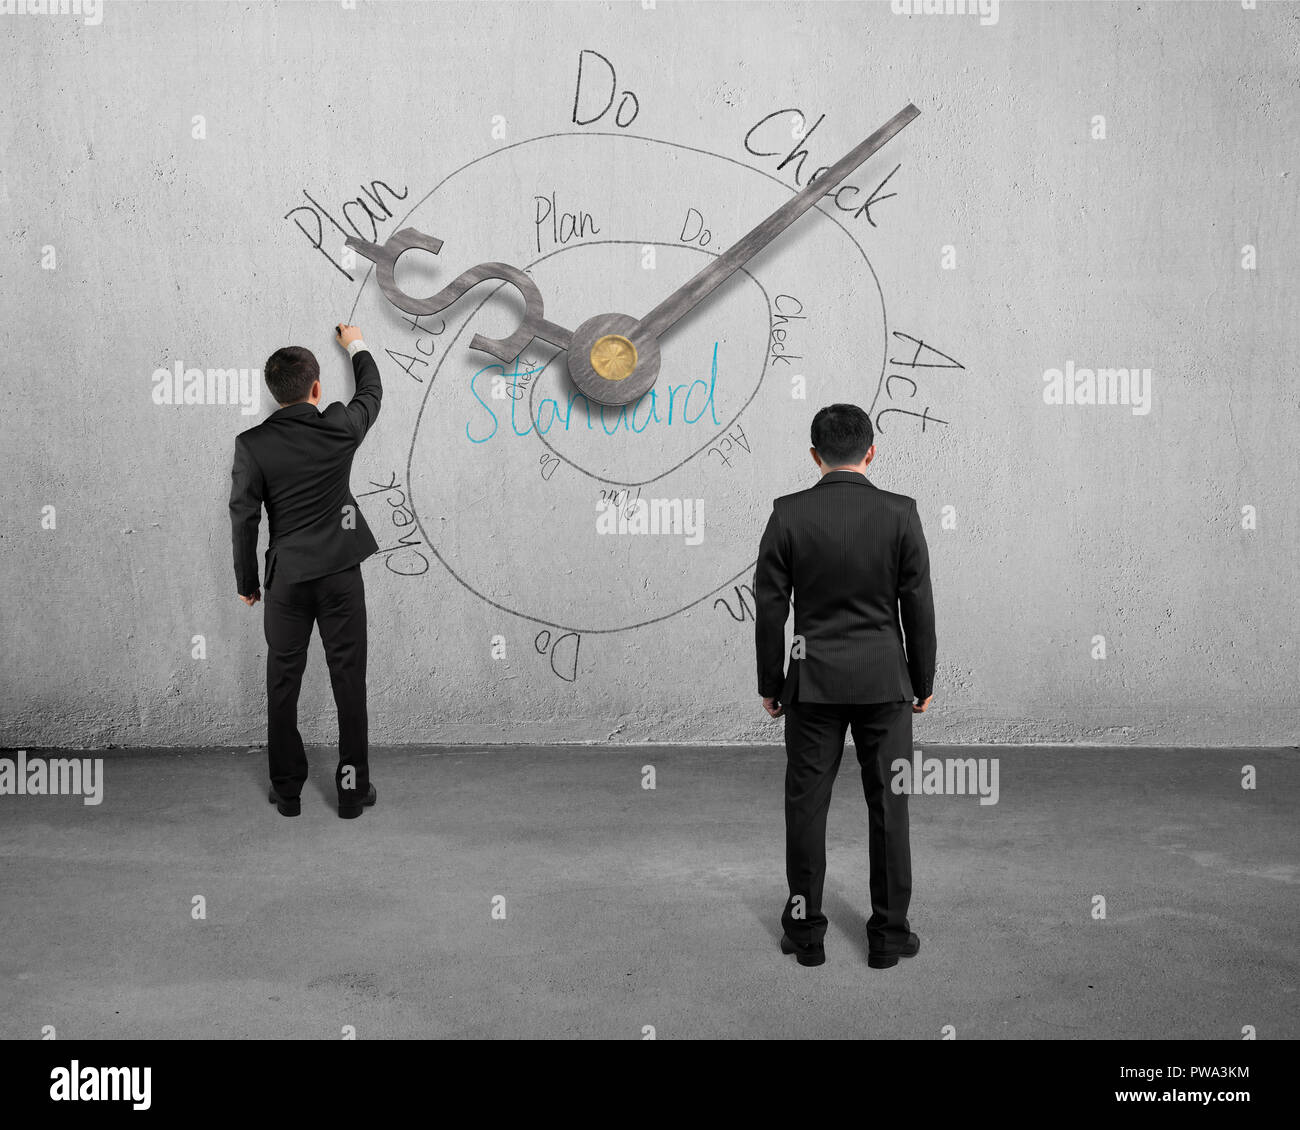 Businessman sketching PDCA cycle on concrete wall with clock hands - Stock Image